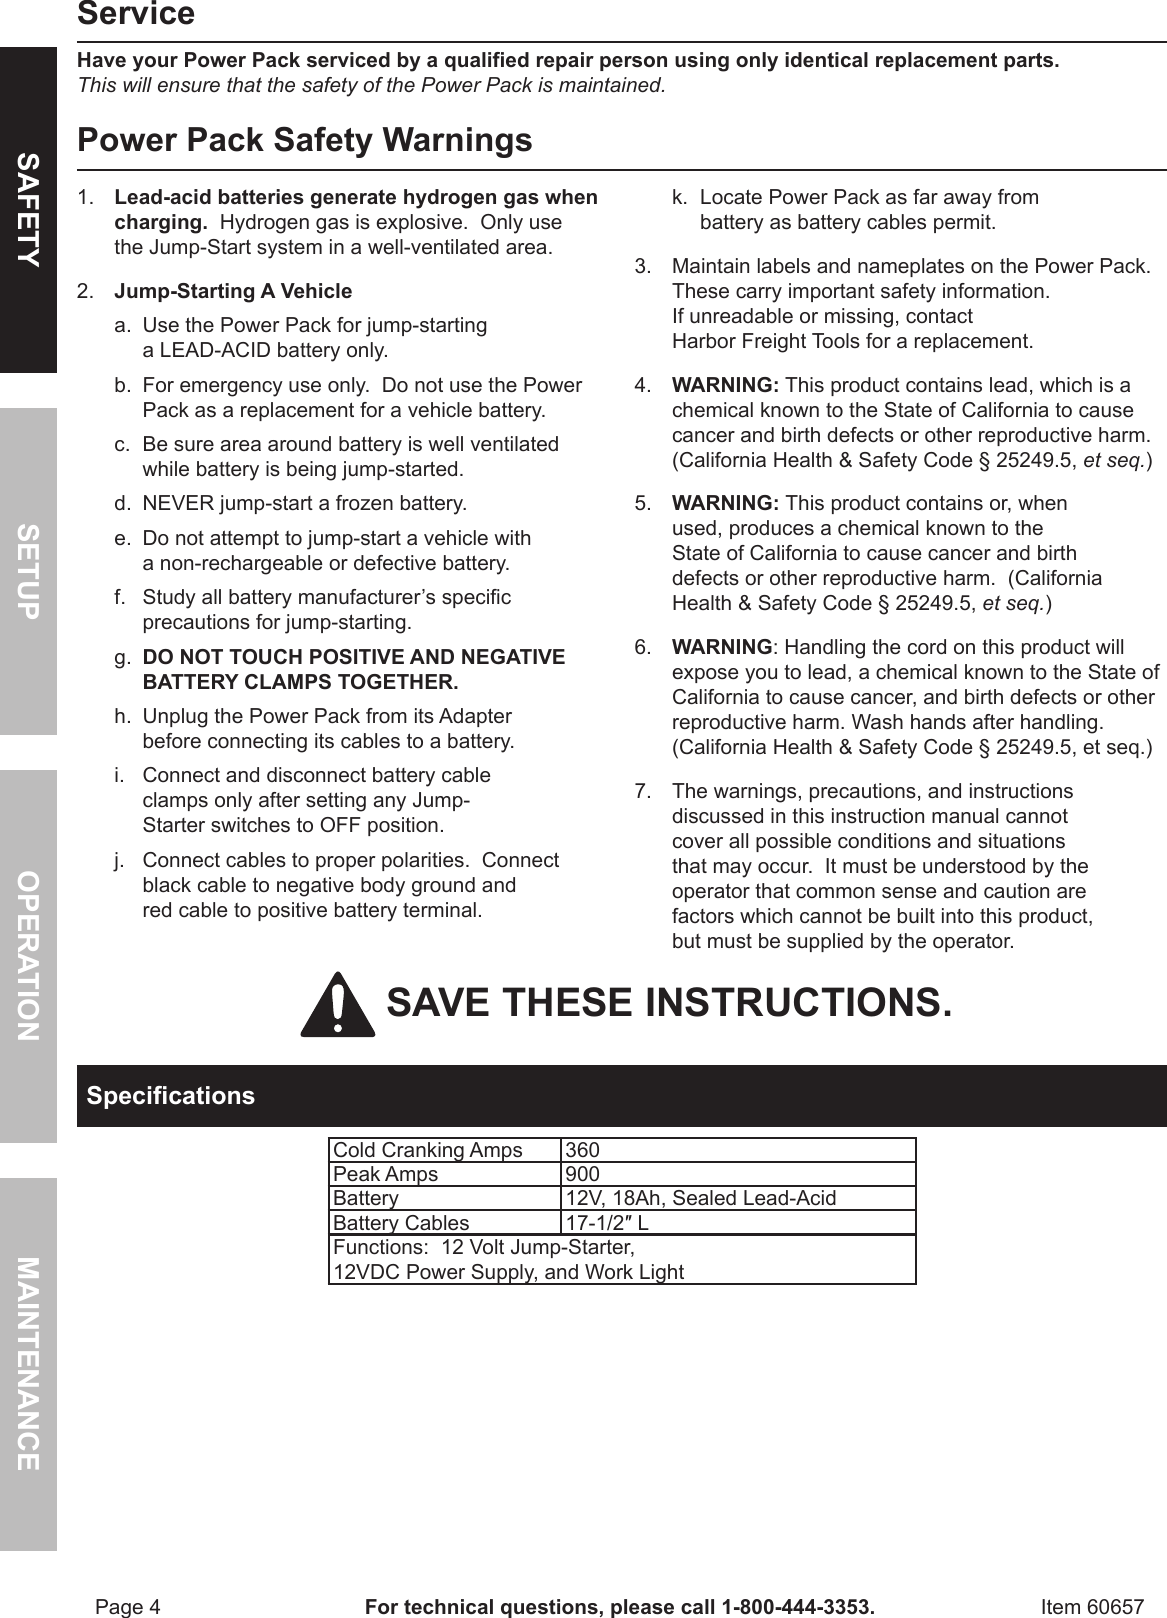 Harbor Freight 60657 Owner S Manual